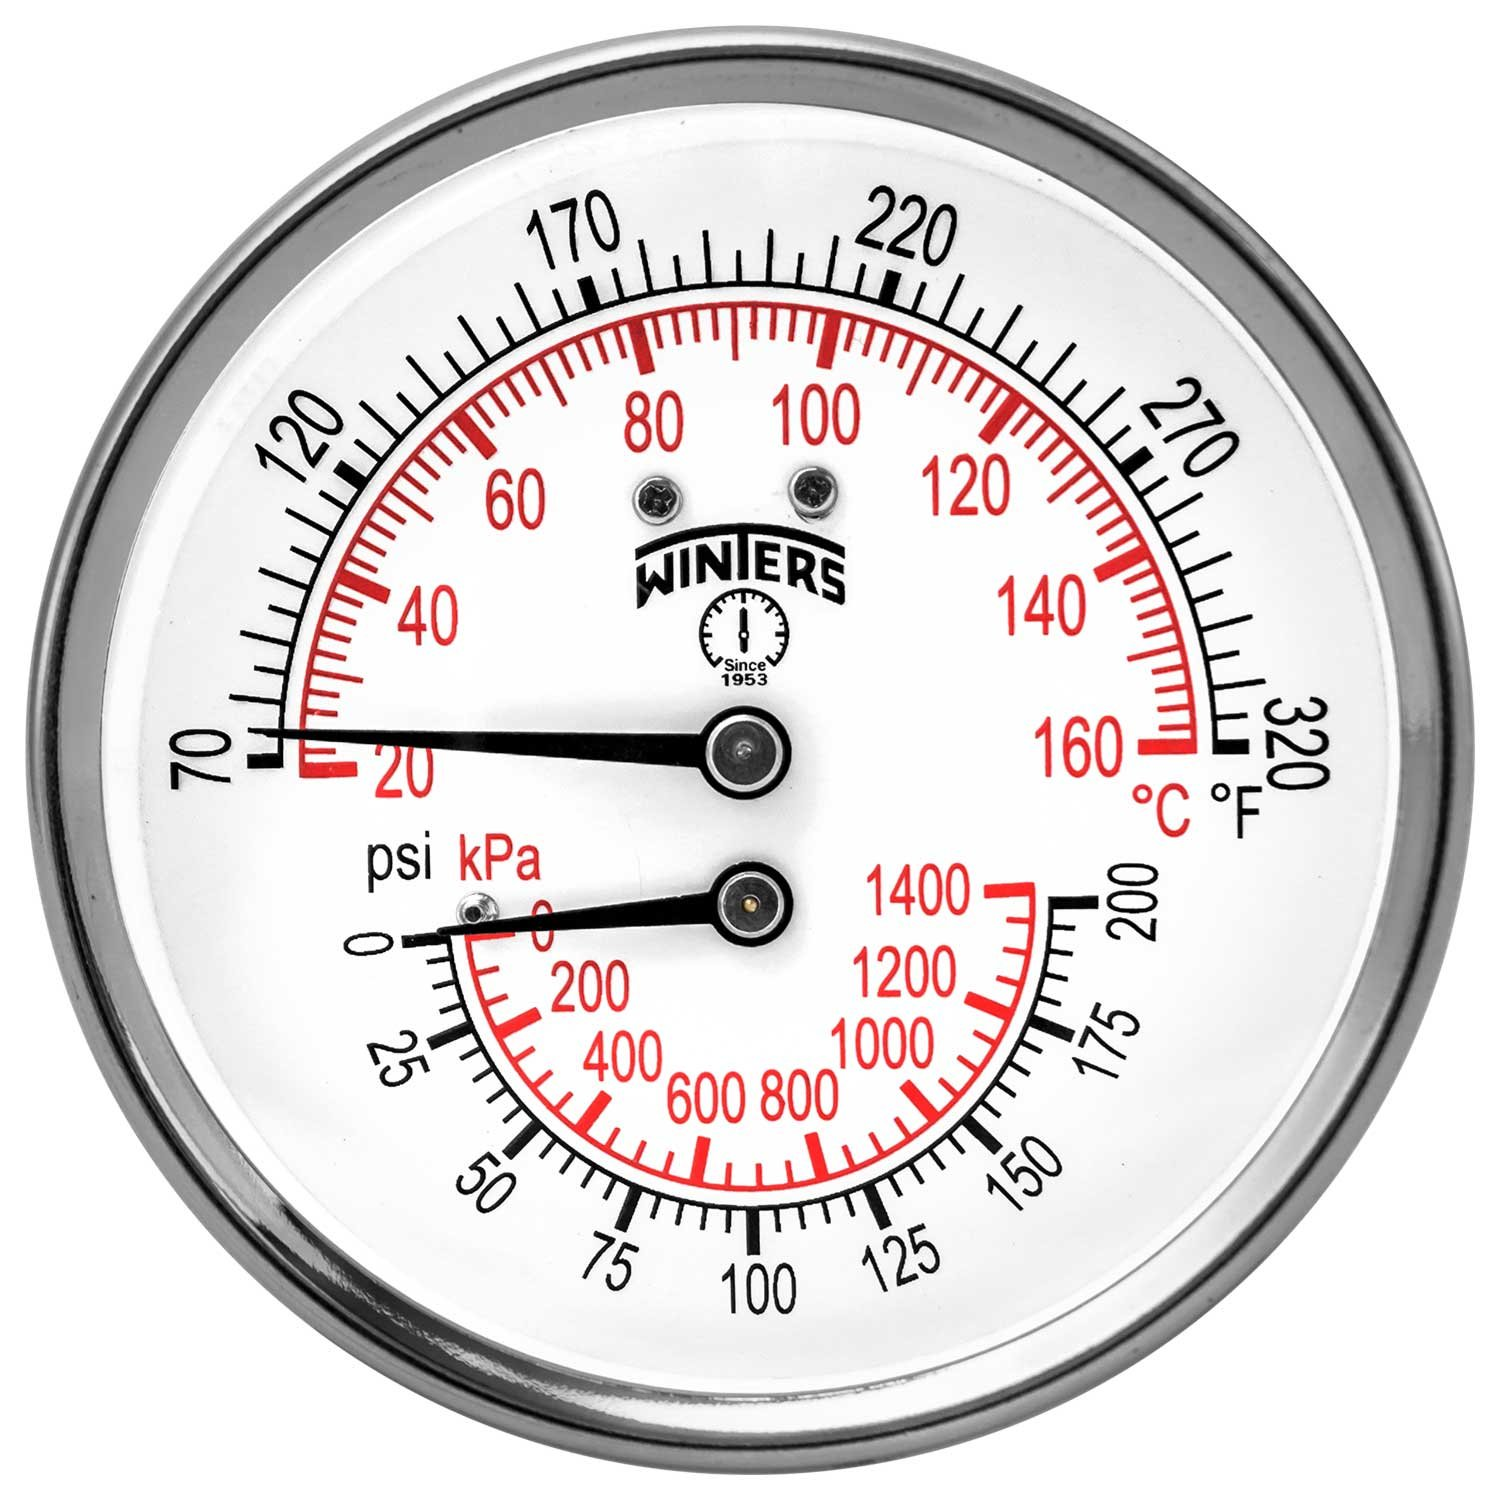 Winters TTD Series Steel Dual Scale Tridicator Thermometer with 2'' Stem, 0-200psi/kpa, 3'' Dial Display, ±3-2-3% Accuracy, 1/2'' NPT Back Mount, 70-320 Deg F/C